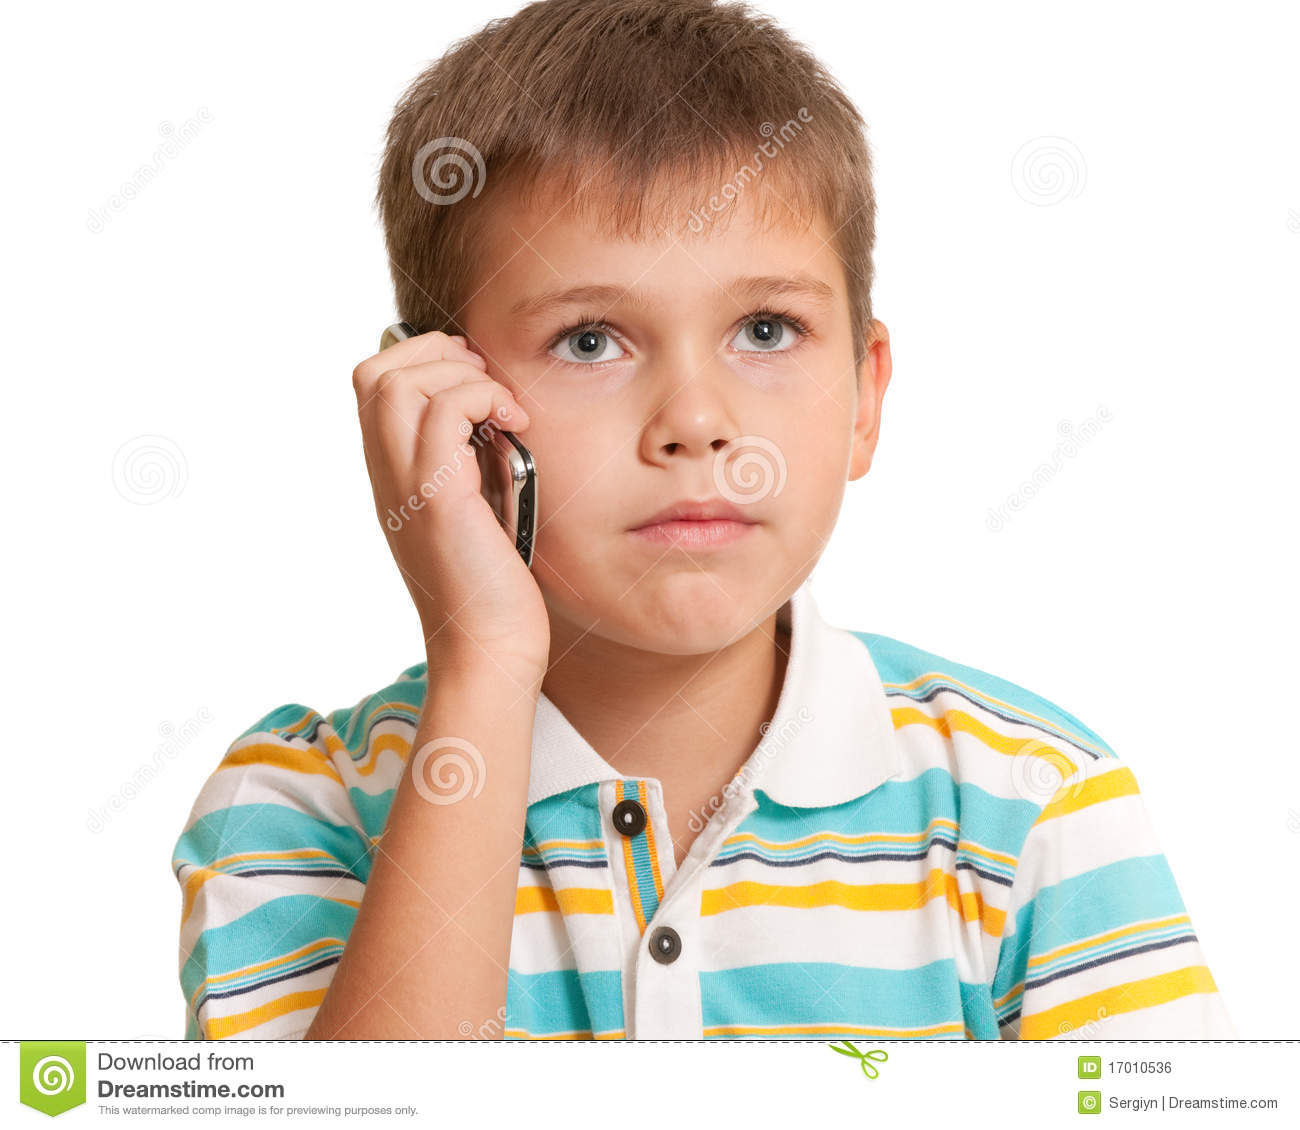 Serious Kid Talking On The Phone Stock Photo - Image: 17010536